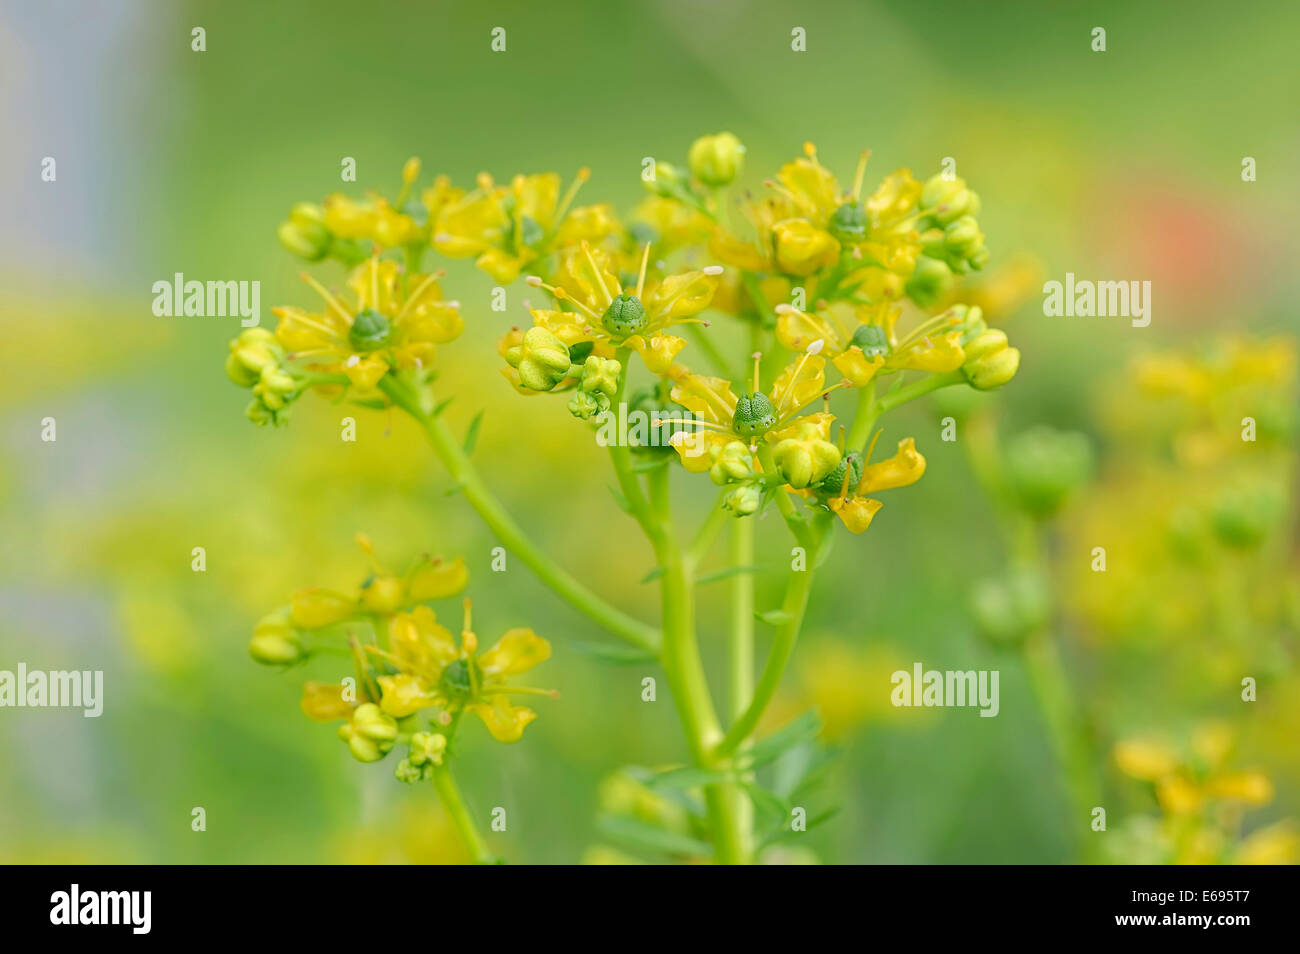 Common Rue or Herb-of-grace (Ruta graveolens), inflorescence - Stock Image